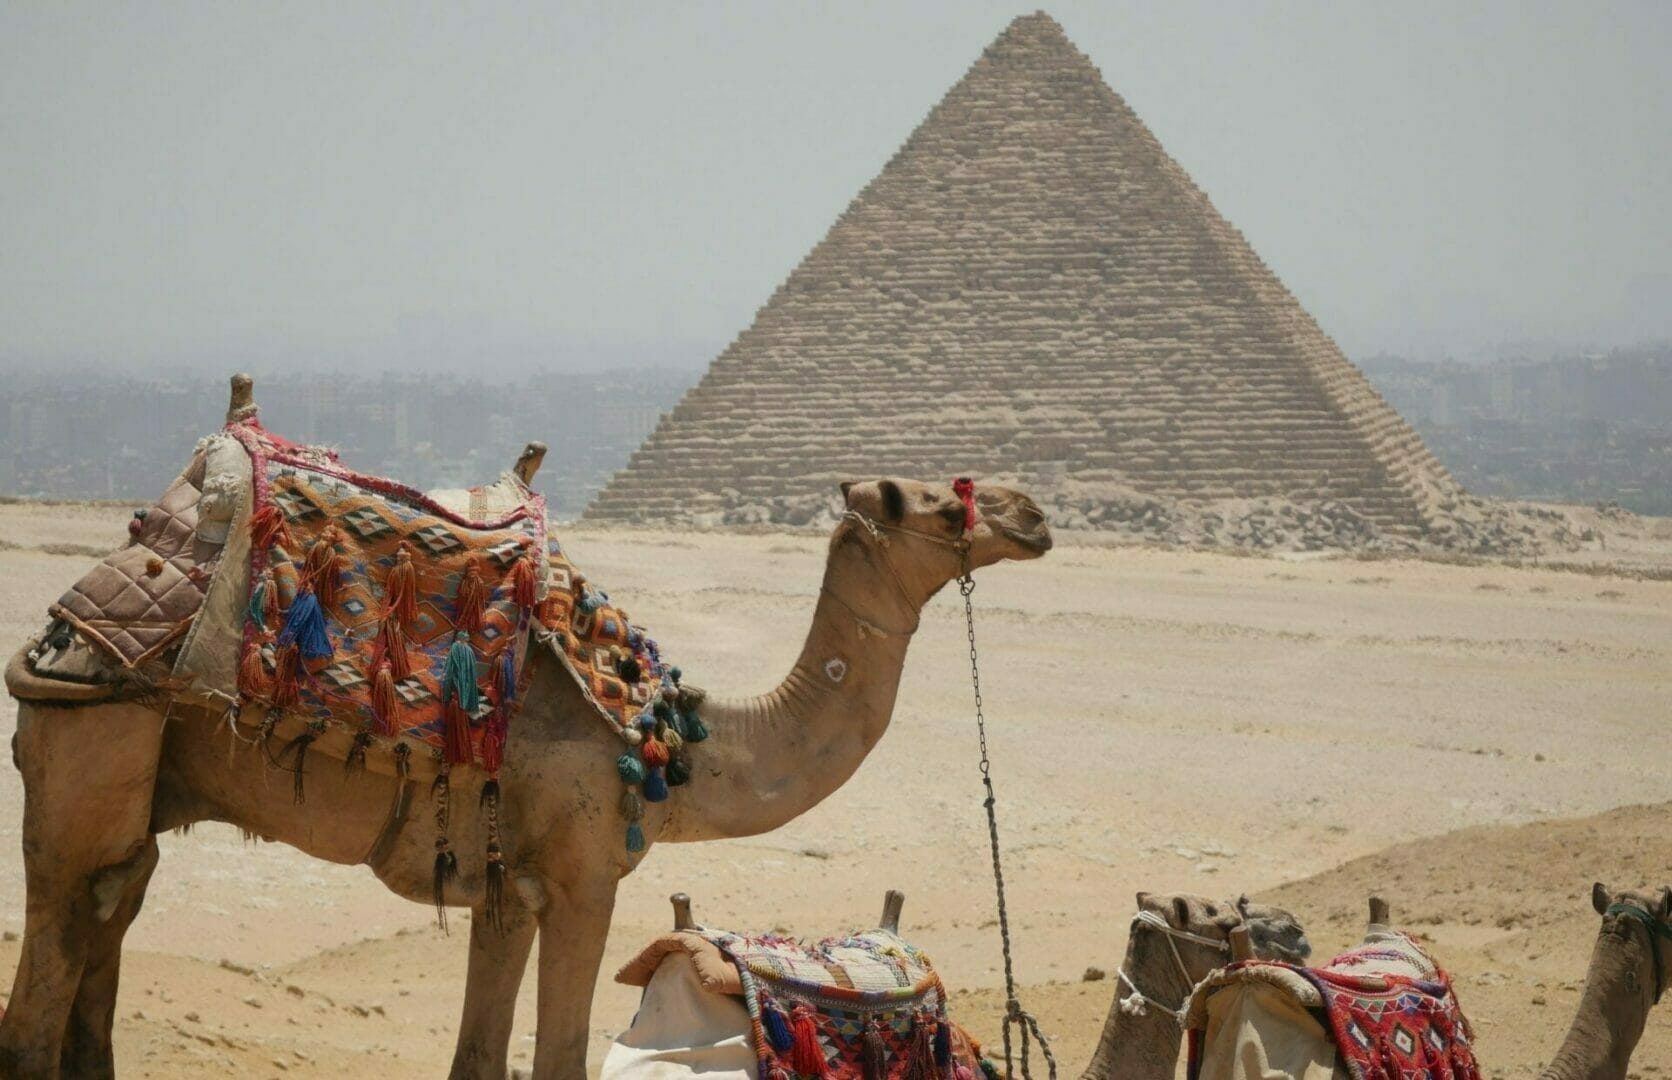 Camels at the pyramids-Egypt Group Tour-Egypt Best Value Group Holiday-Egypt Best Group Adventure-Egypt Tour-Small Group Egypt Tour